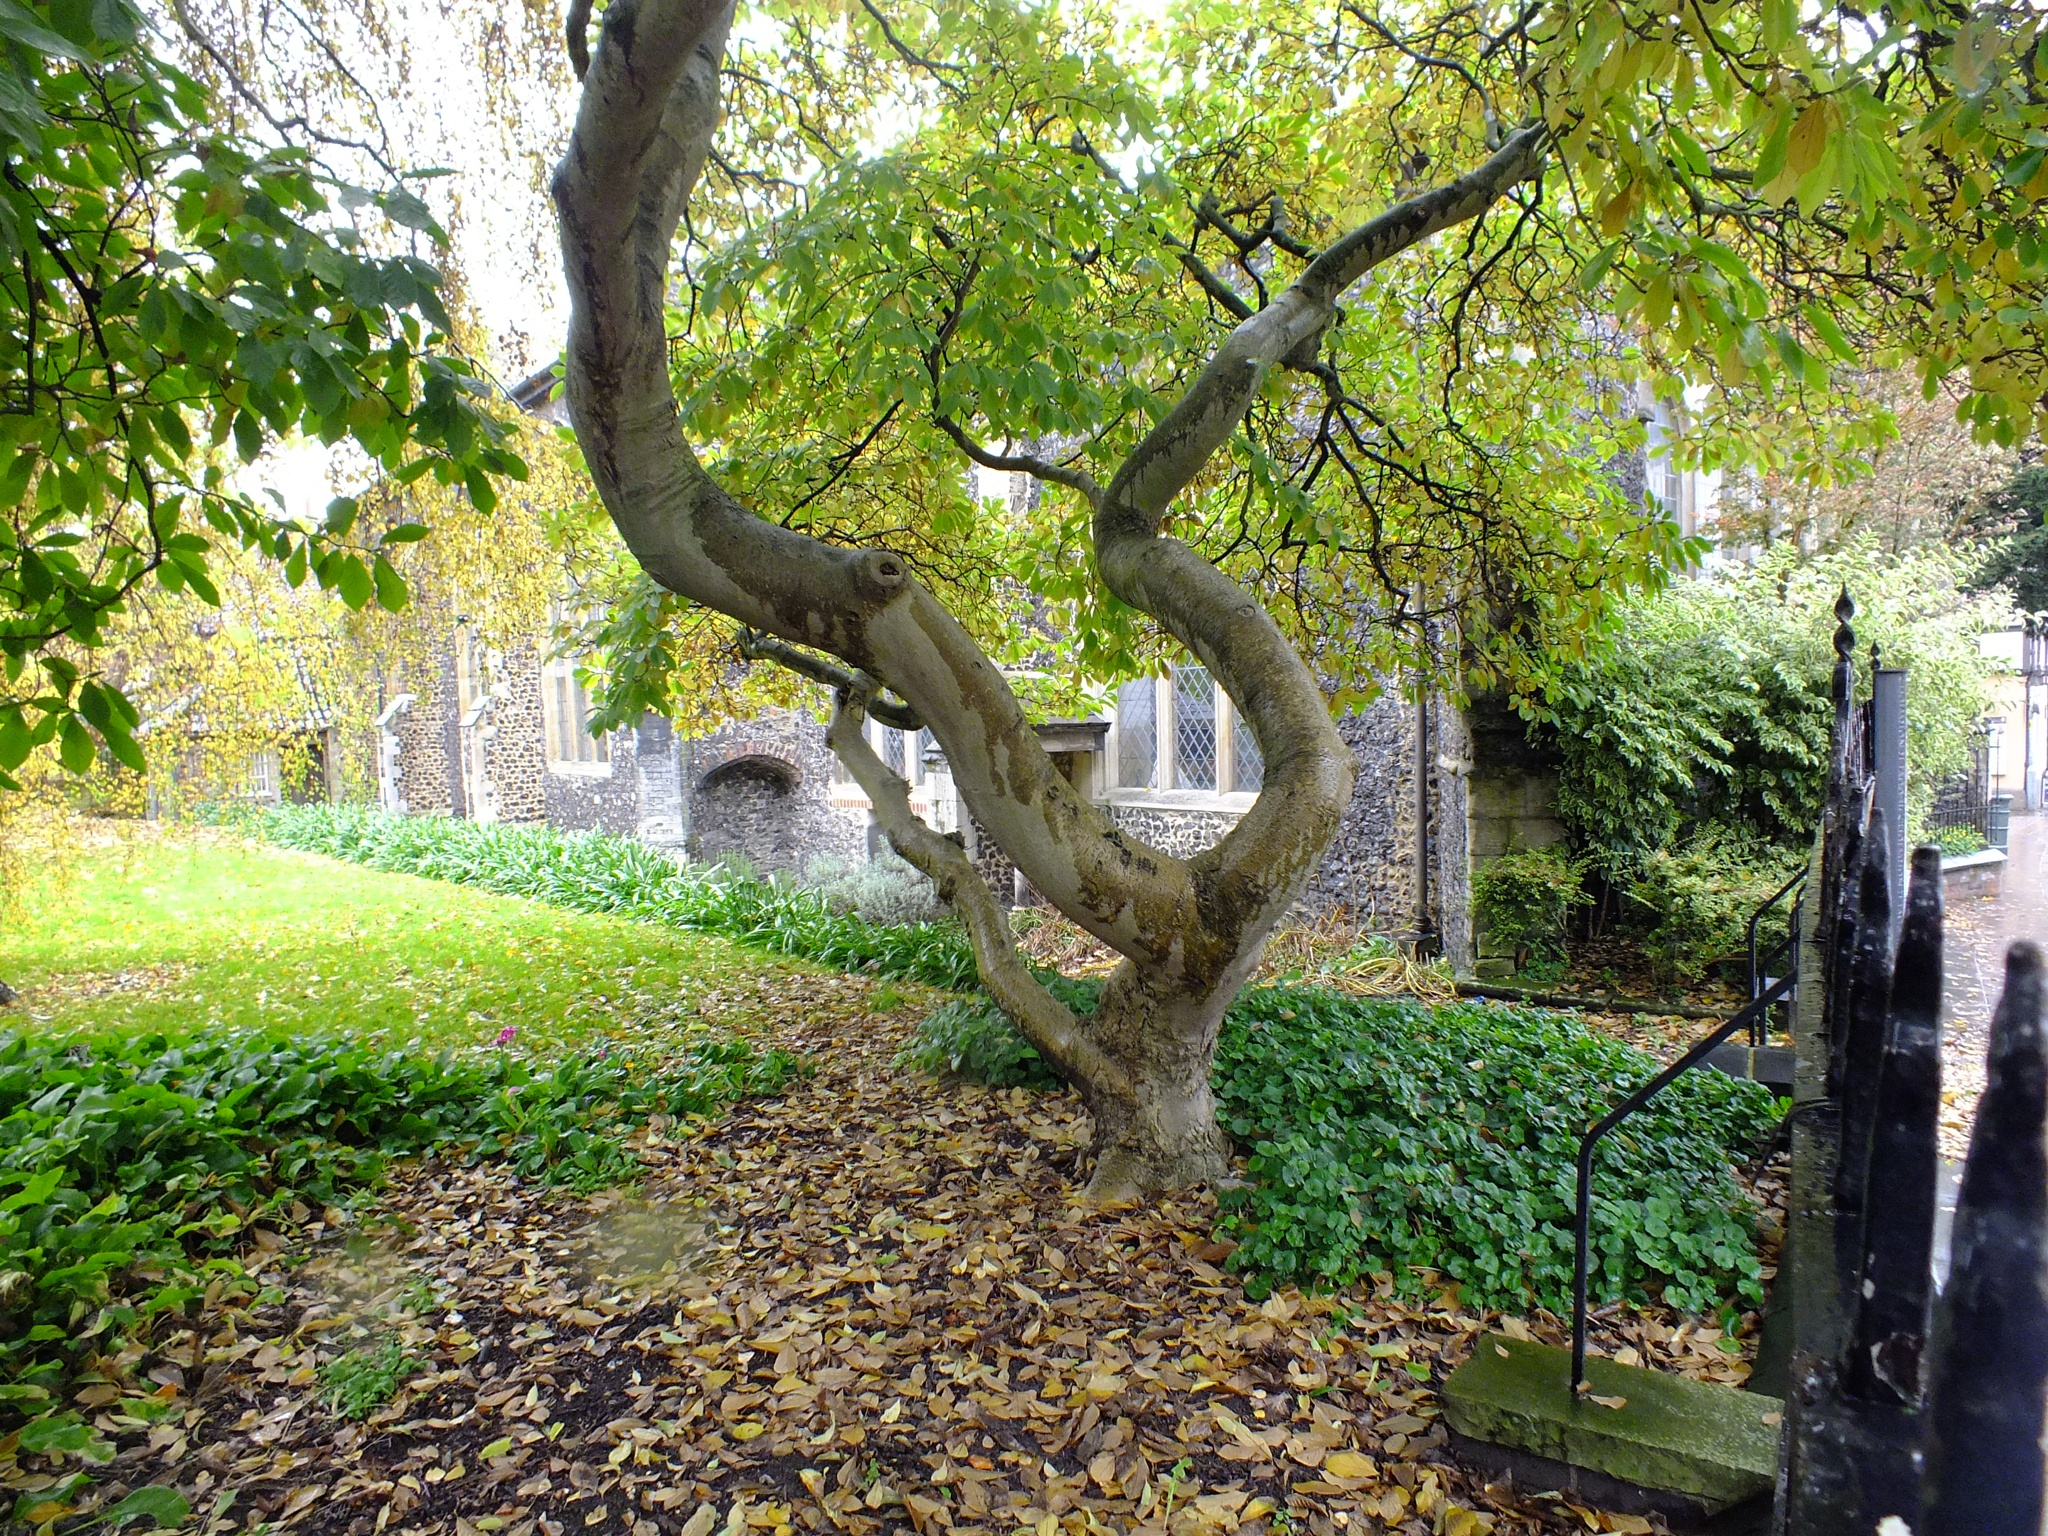 Norwich Trees 01 by afrior